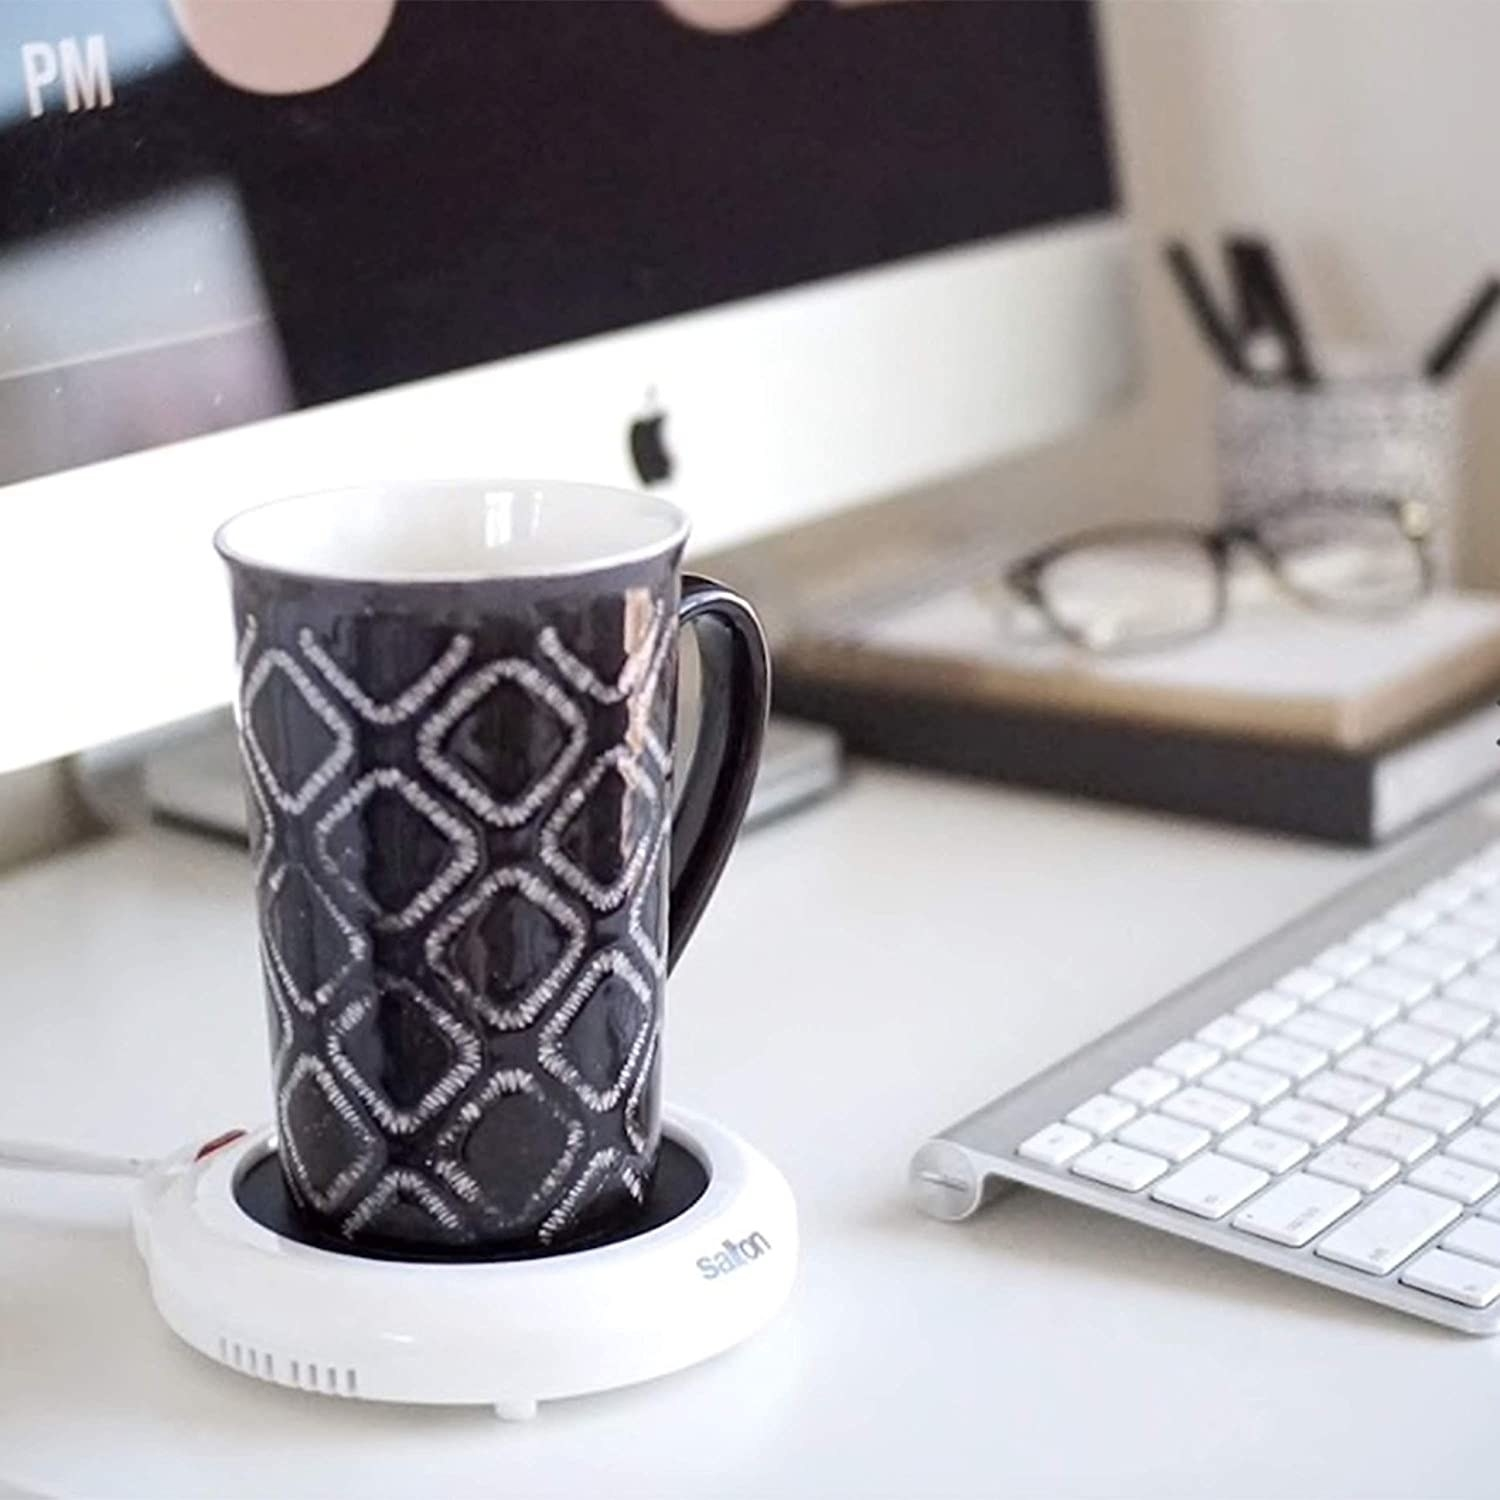 An electric mug warmer with a patterned mug on top of it